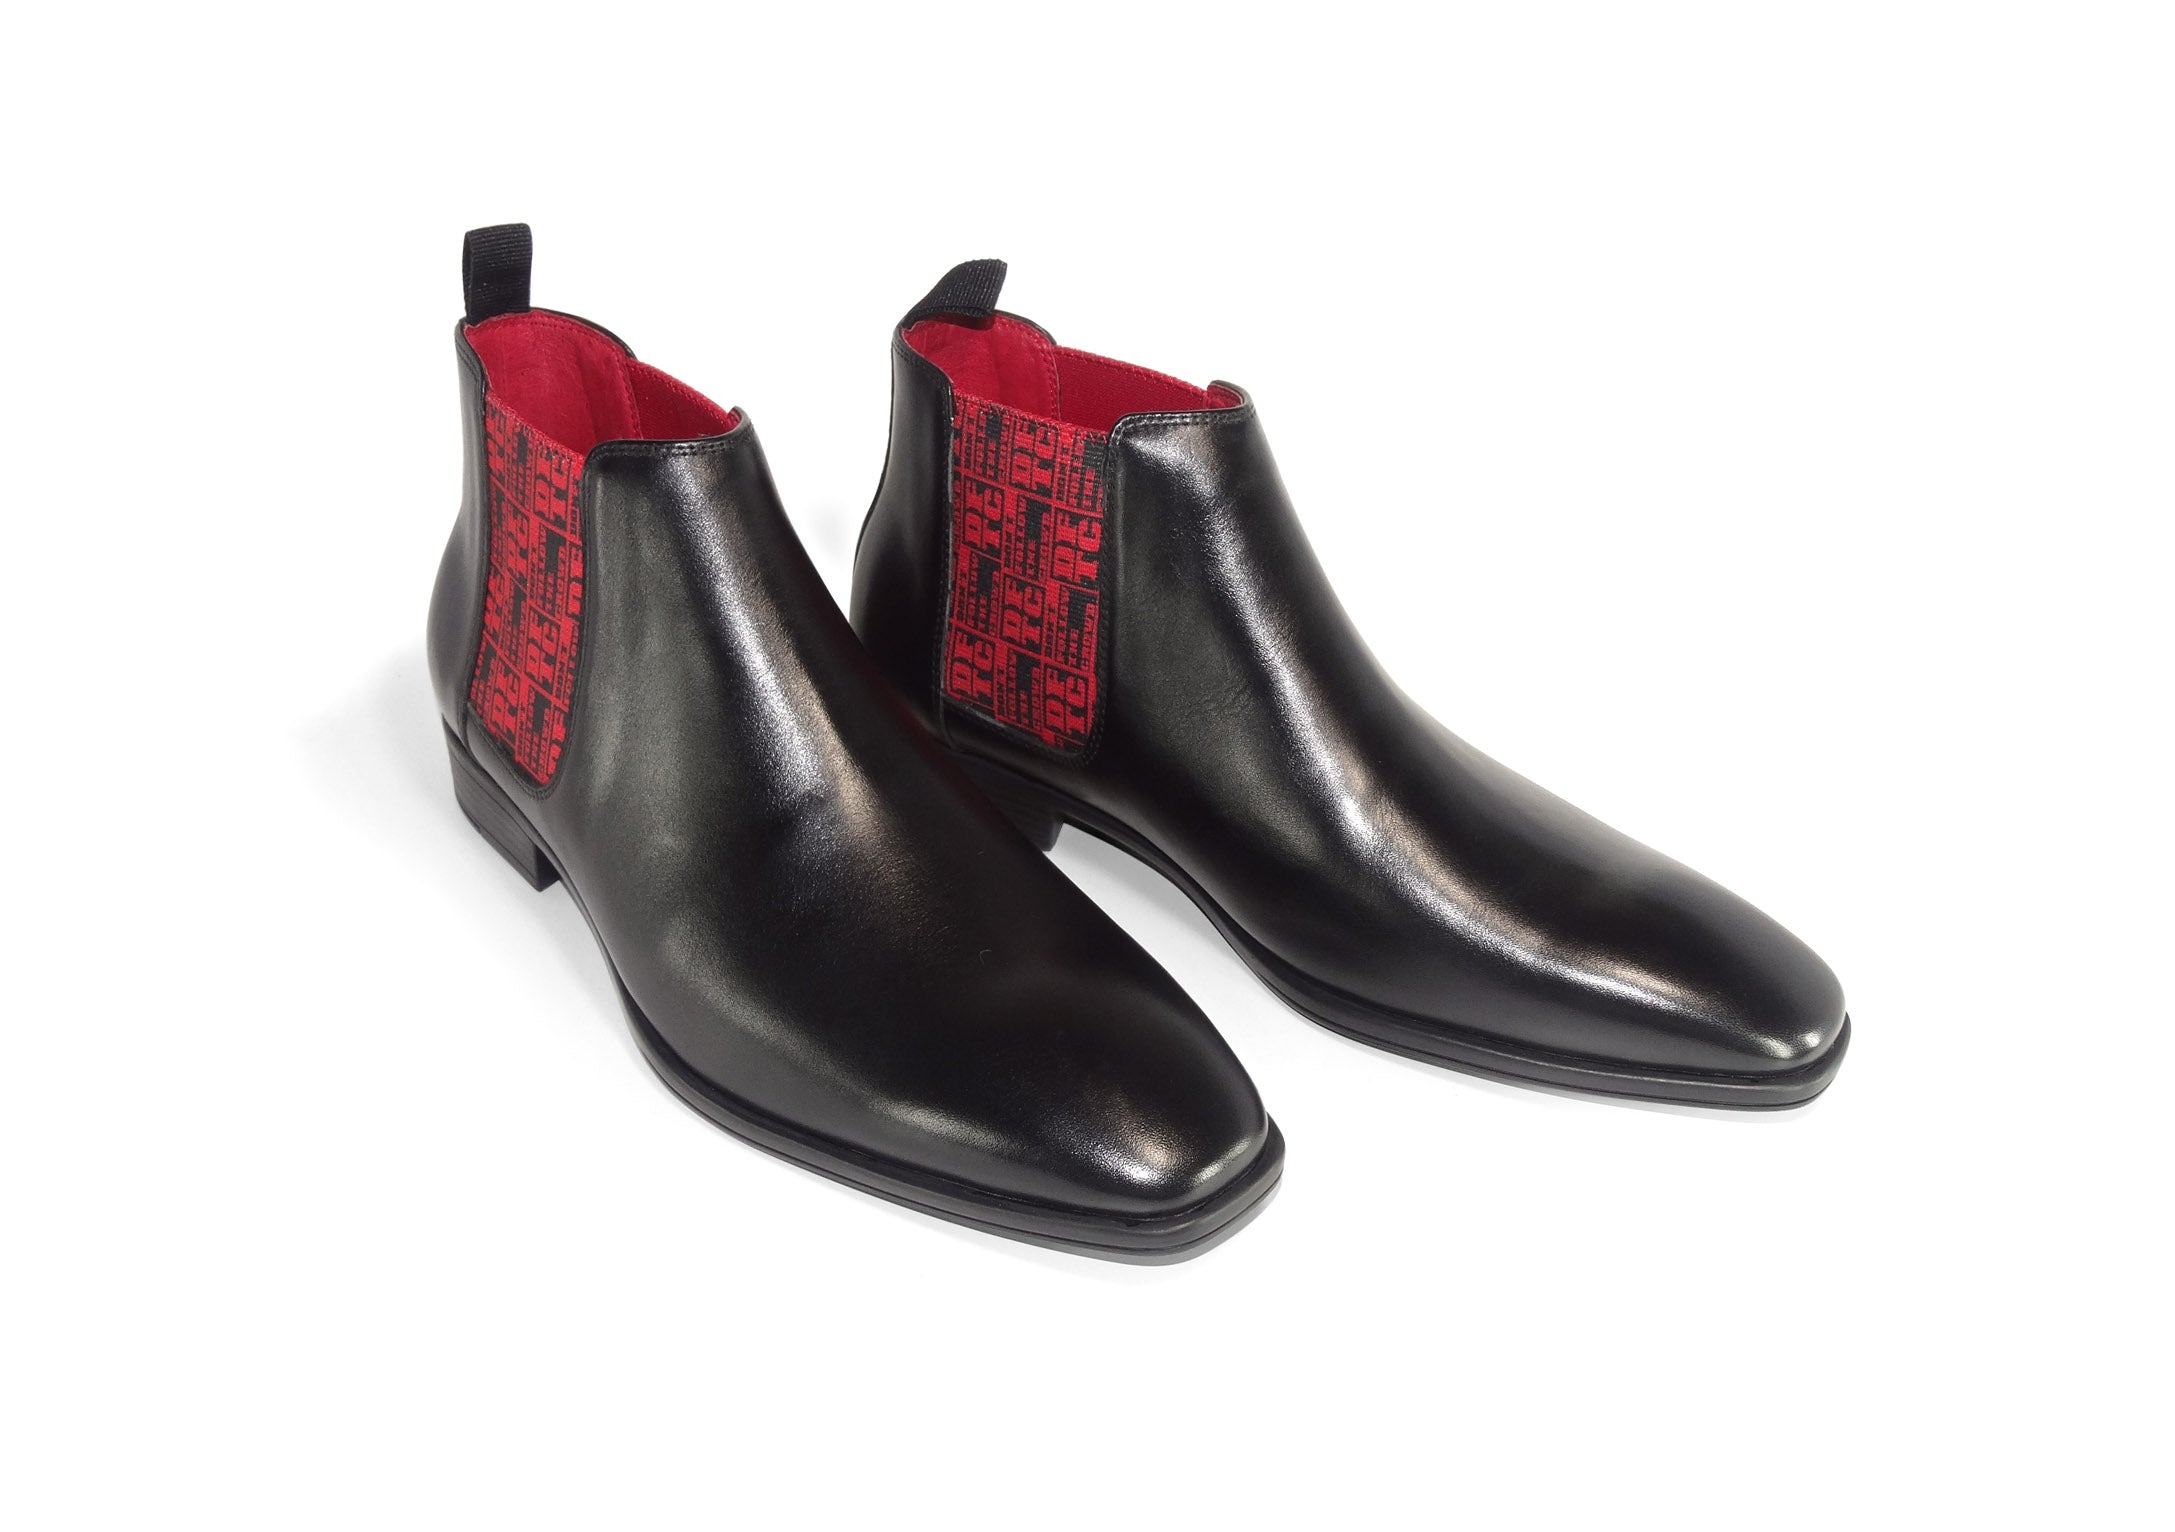 Black Mens Chelsea Boot - DFTC Pattern - pair quart